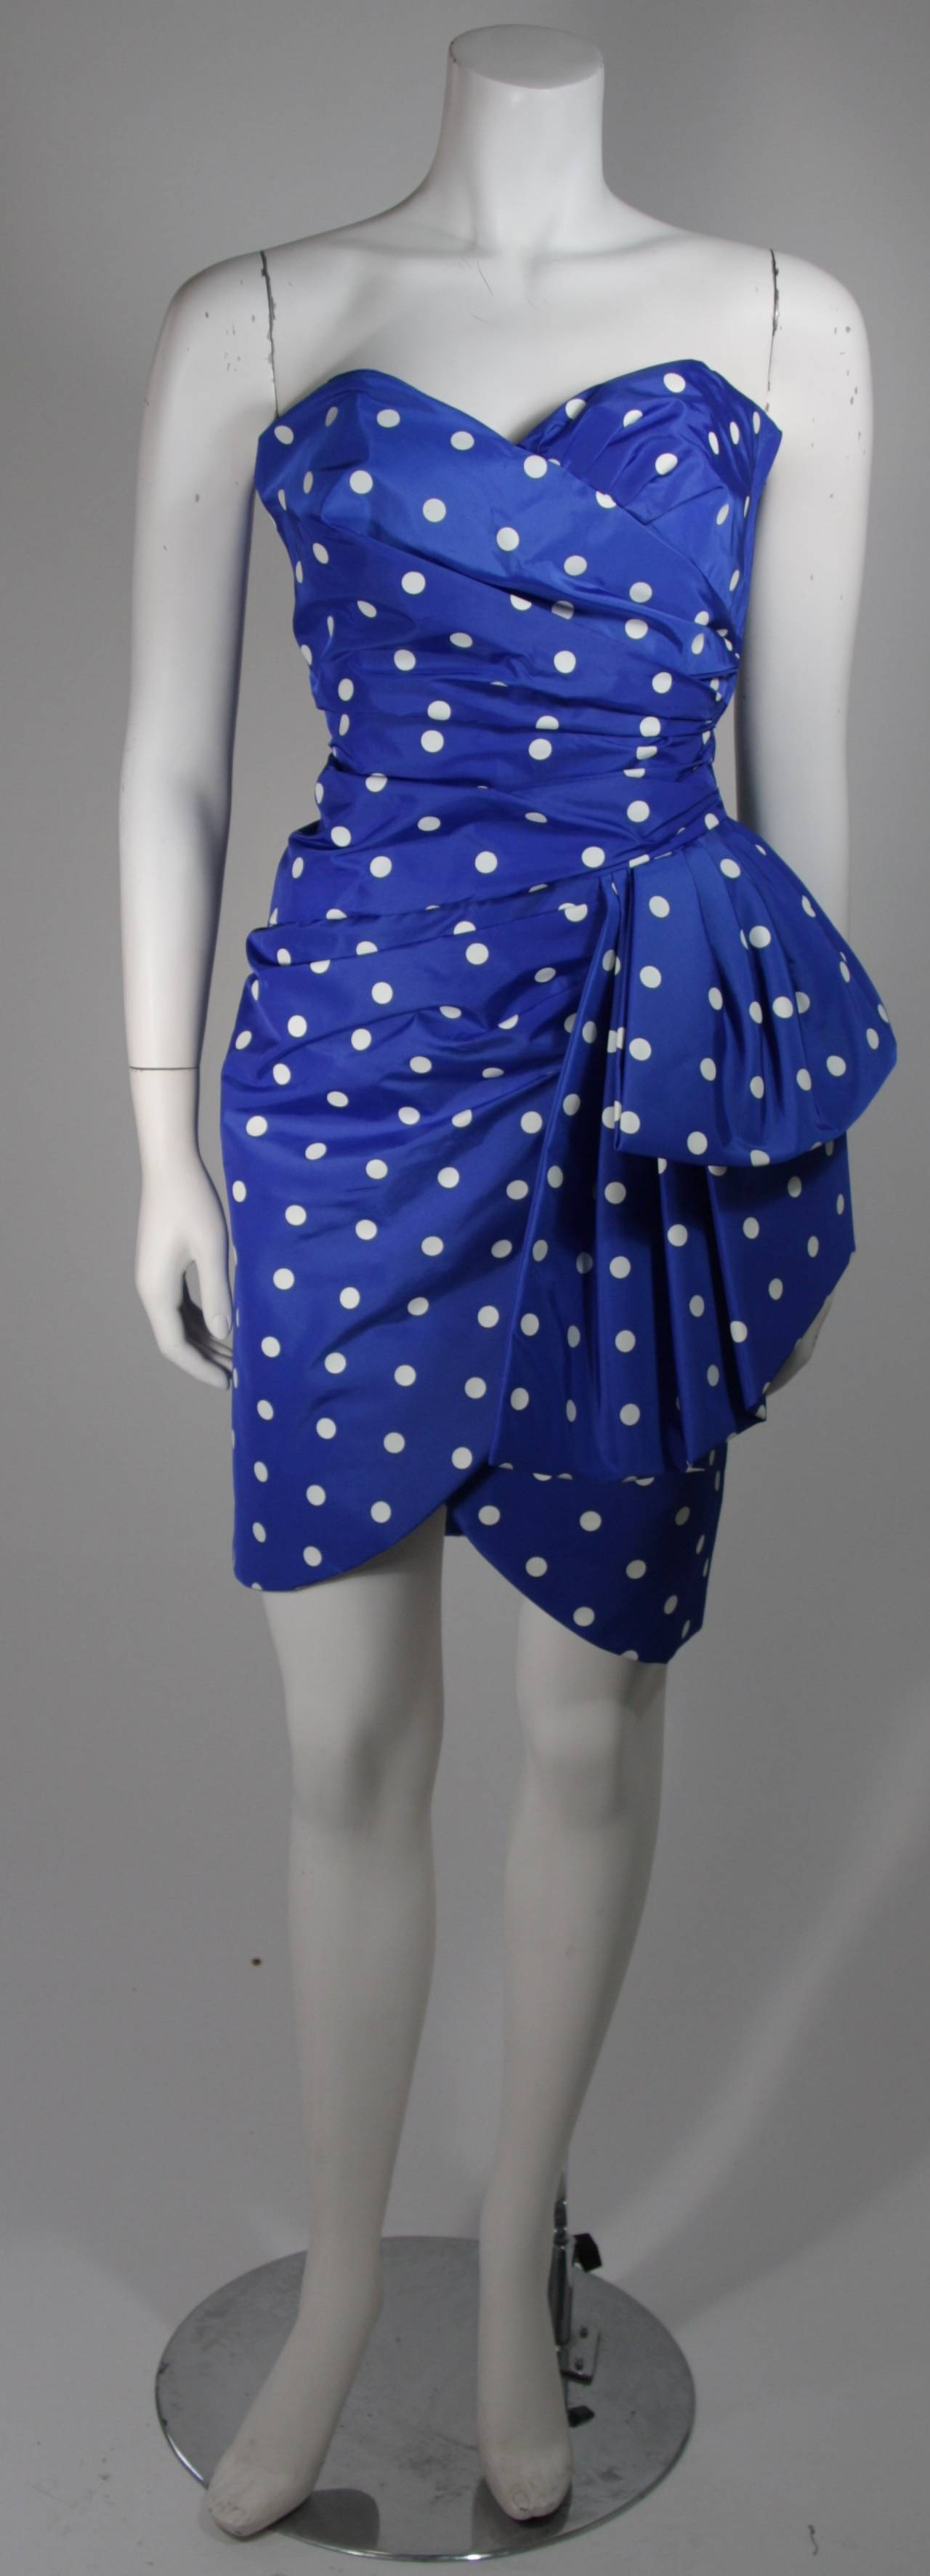 This Victor Costa cocktail dress is composed of a royal blue and white polka fabric. The gathered design is accented by a large side draping bow at the hip. There is a side zipper closure. In excellent condition. Made in United States Of America.